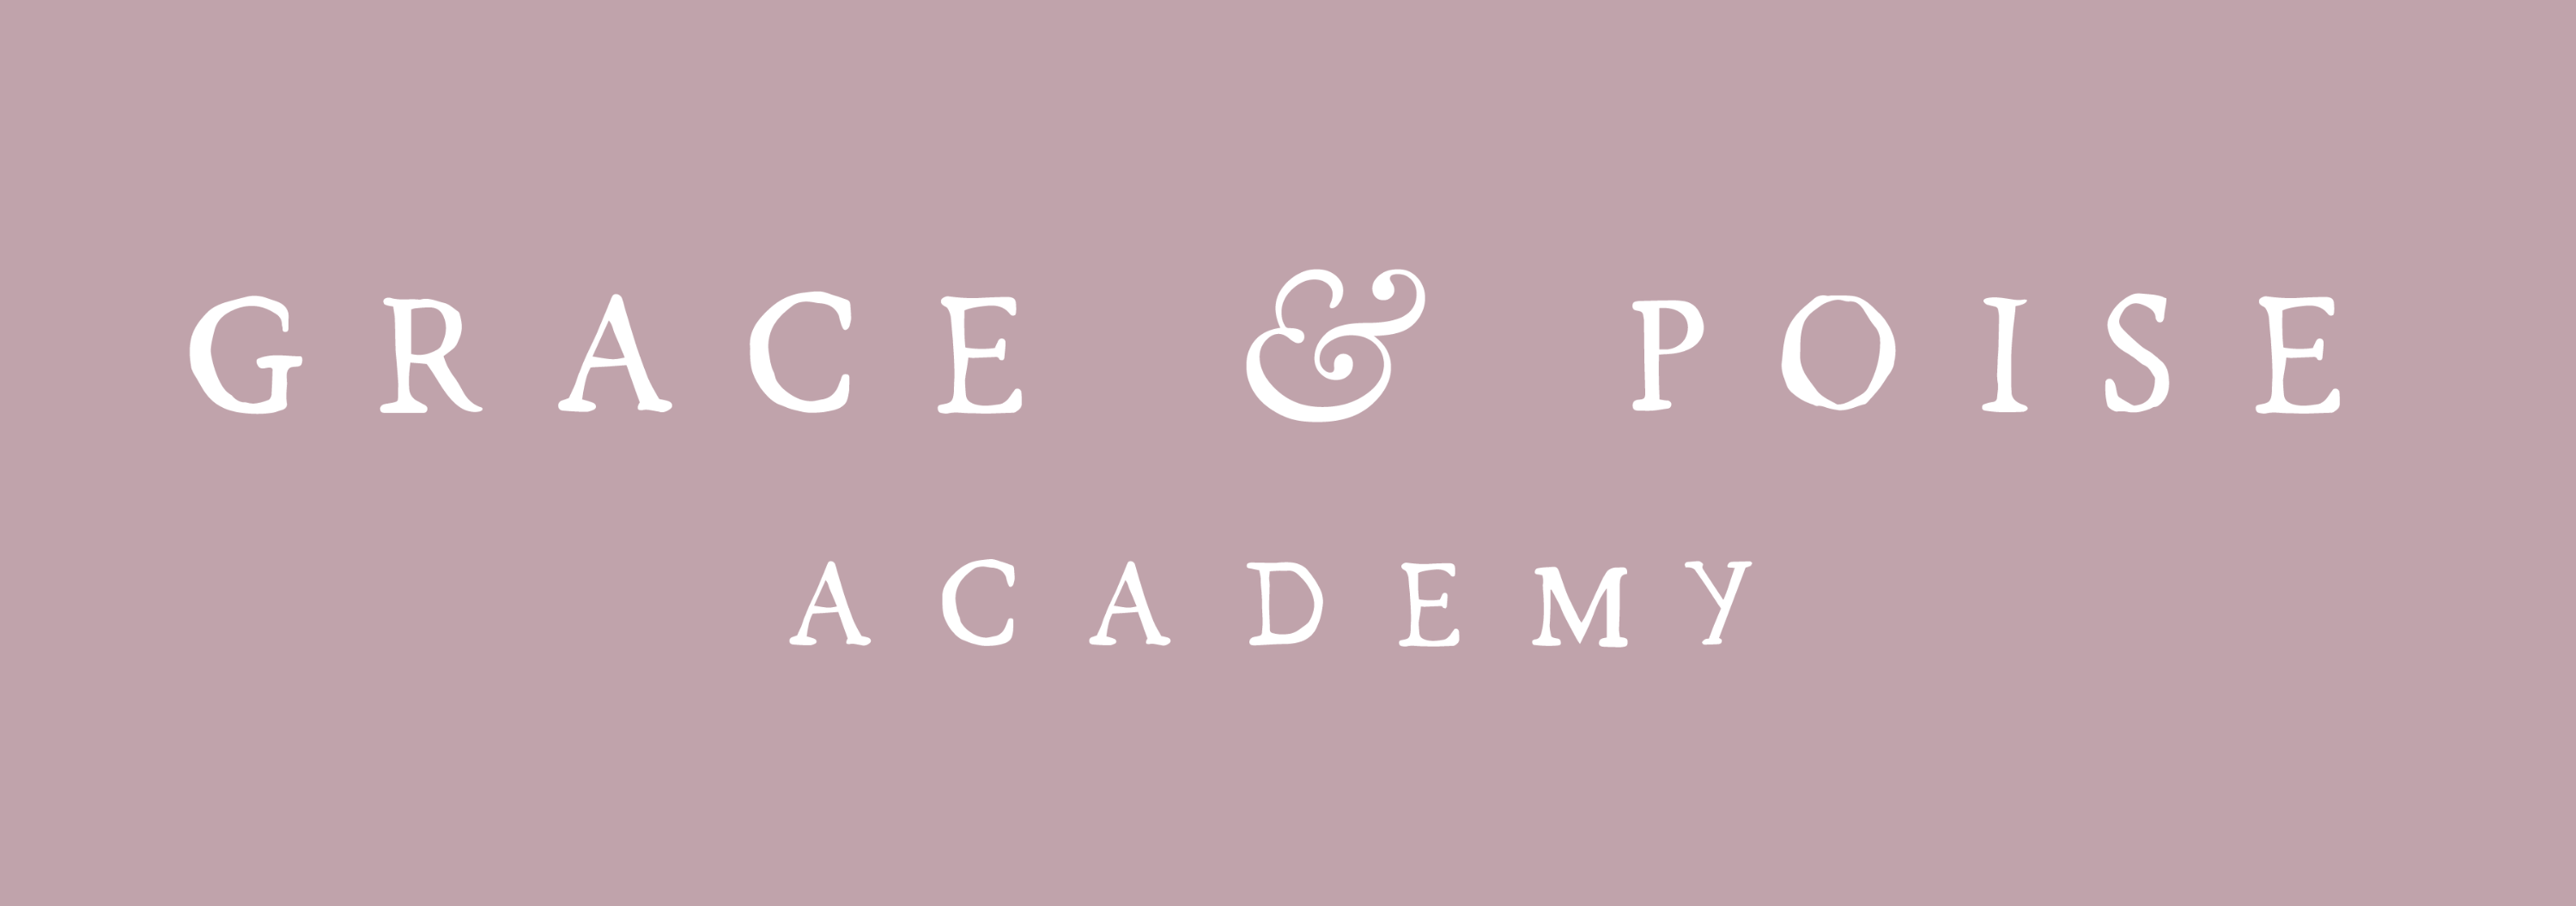 Grace and Poise Academy